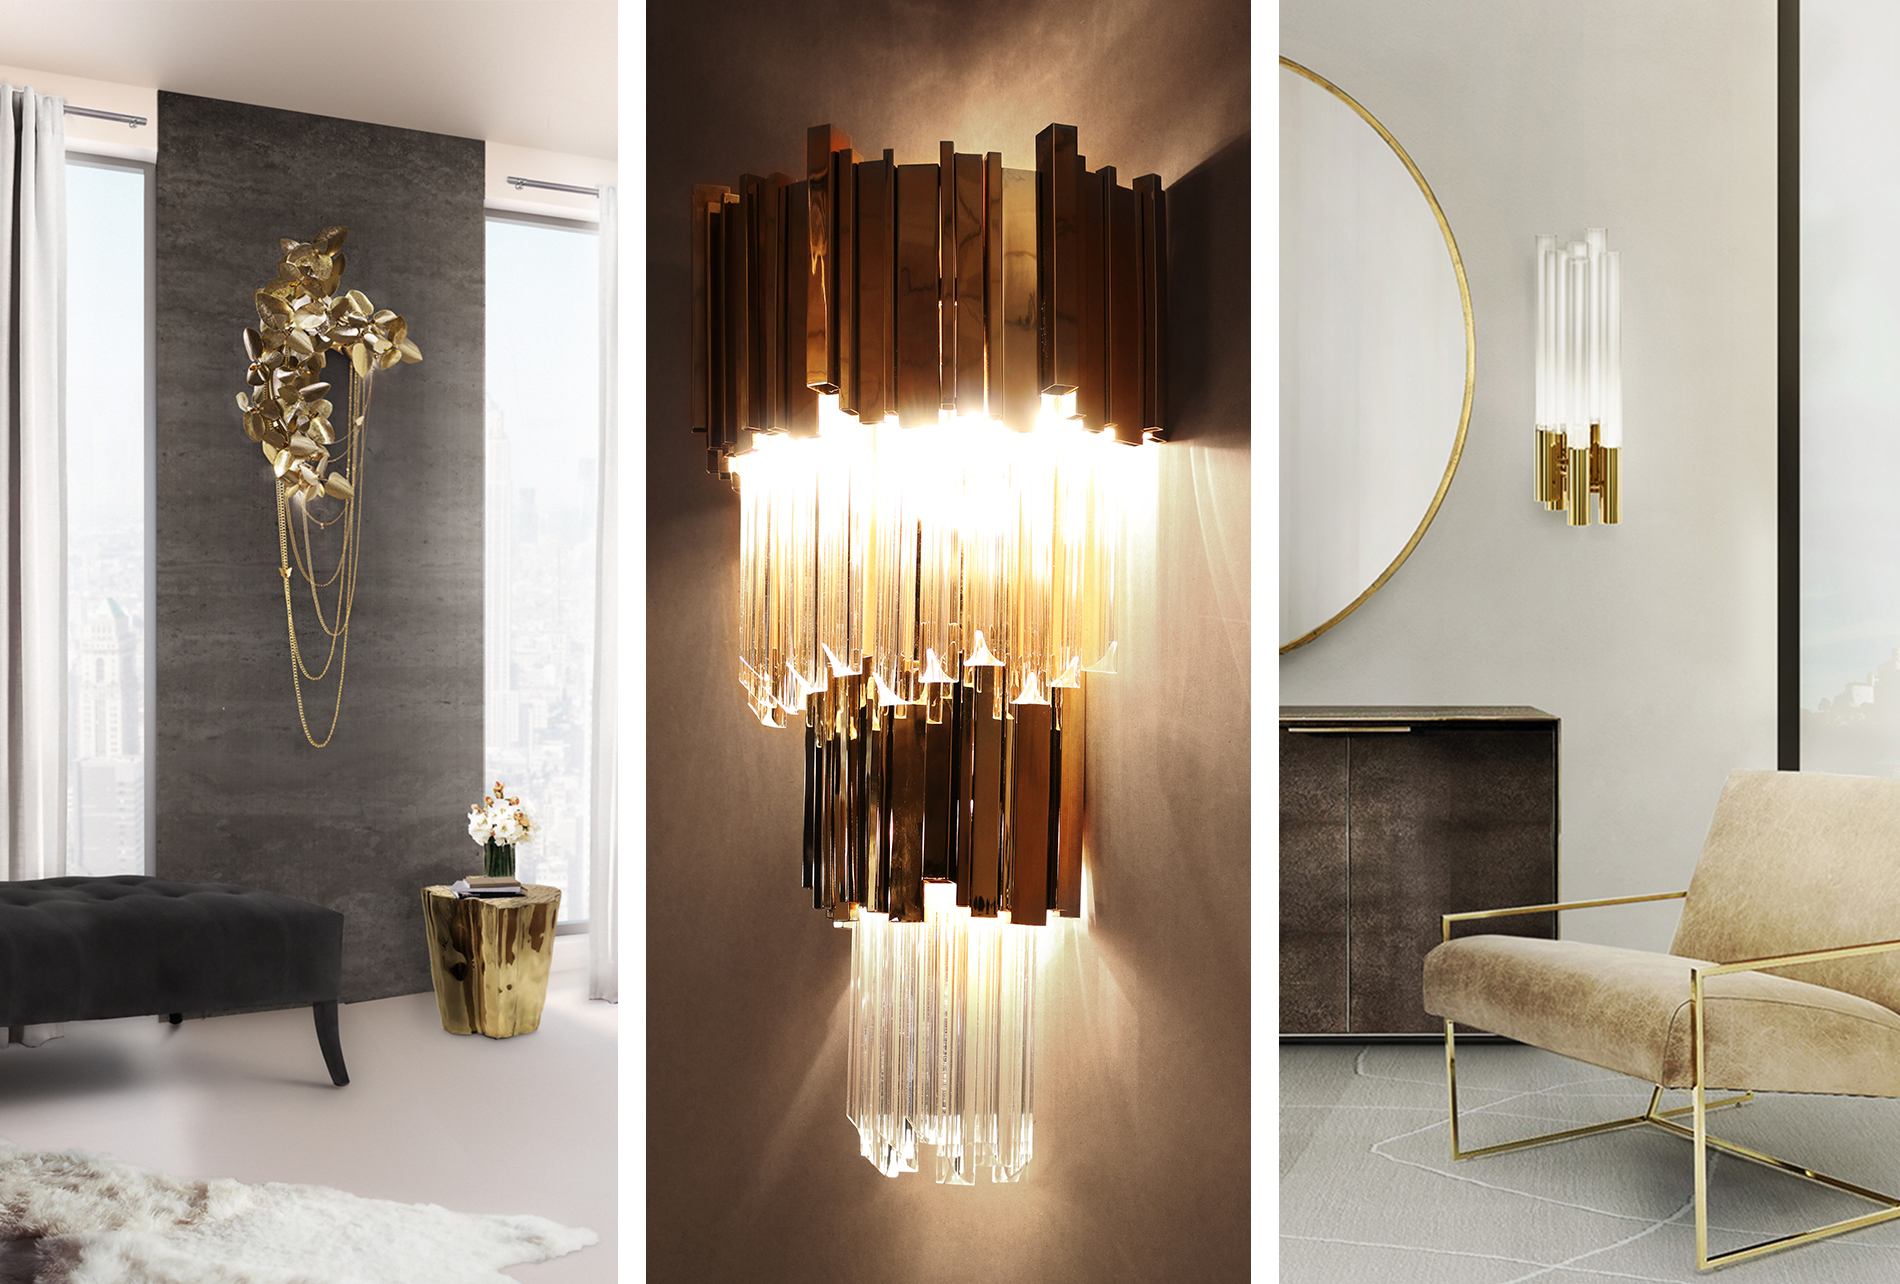 Luxury design: wall lights by Luxxu to create a glamorous decor Interior Designers from Canada Top 5 Interior Designers from Canada Luxxu Wall Lamps Interior Designers from Canada Top 5 Interior Designers from Canada Luxxu Wall Lamps